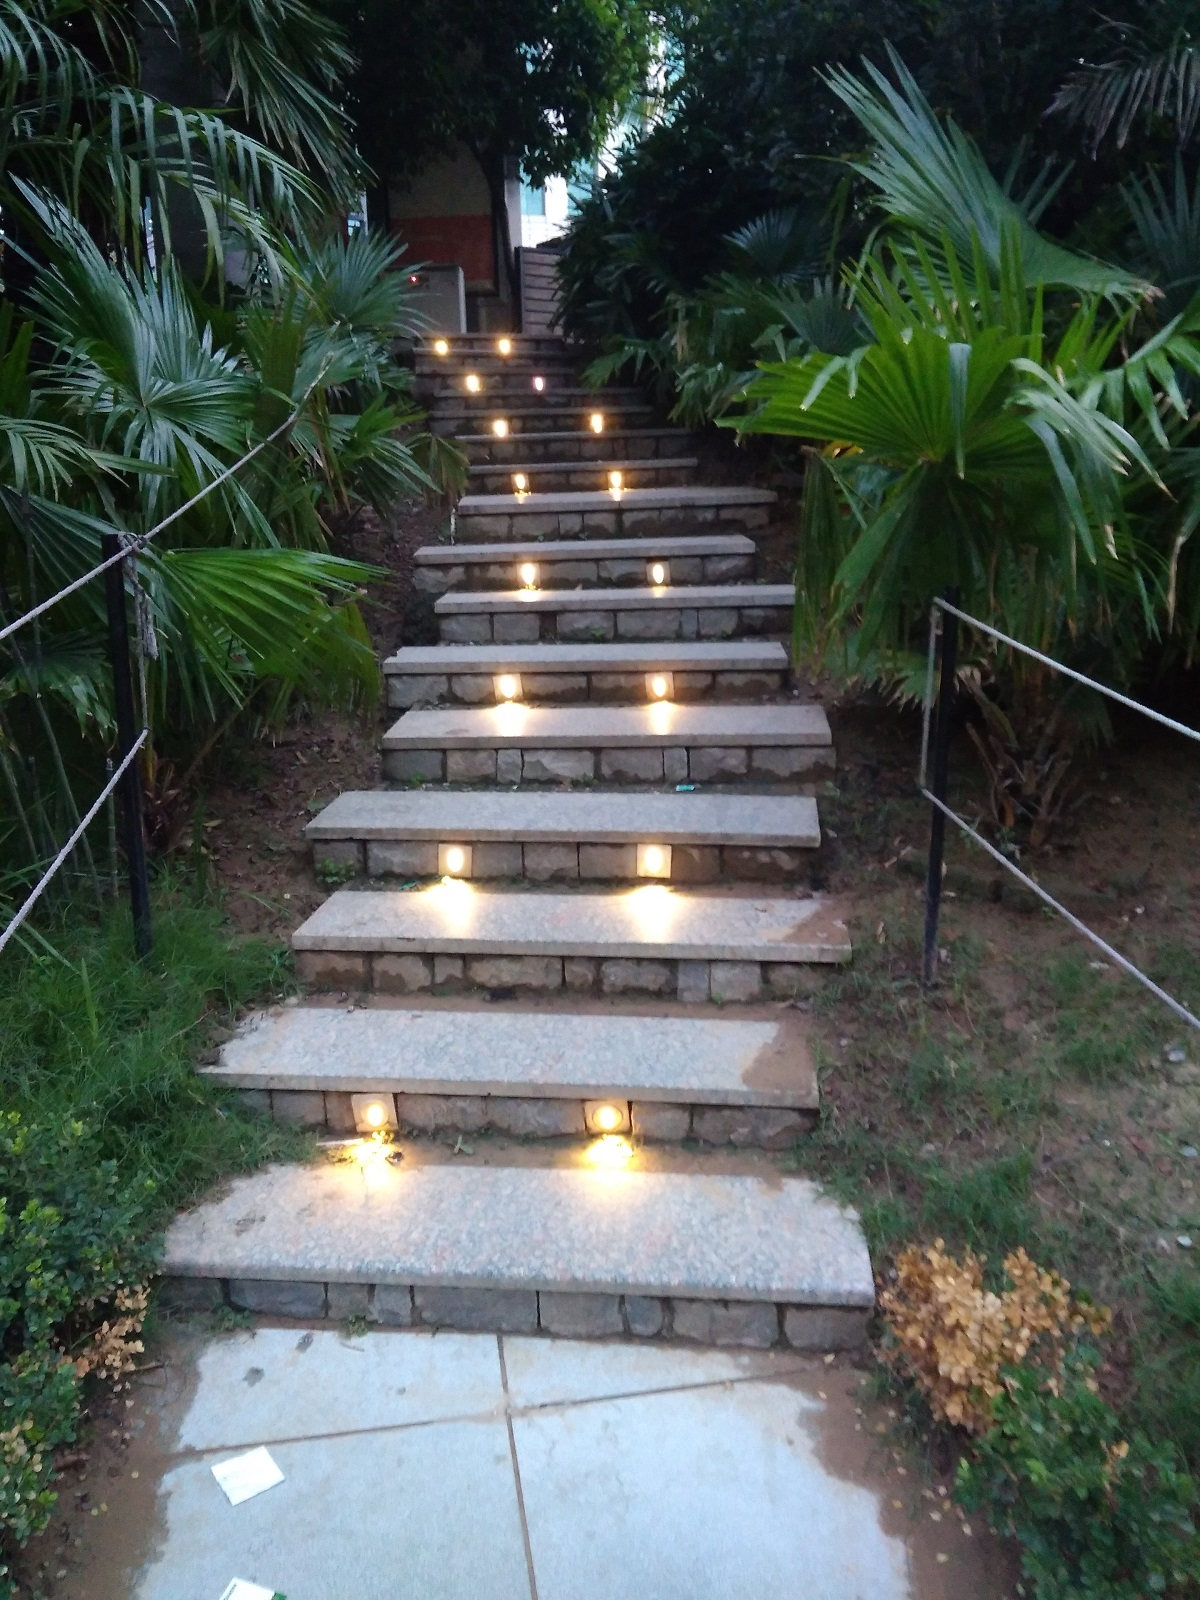 Beautiful view of stairs with lights